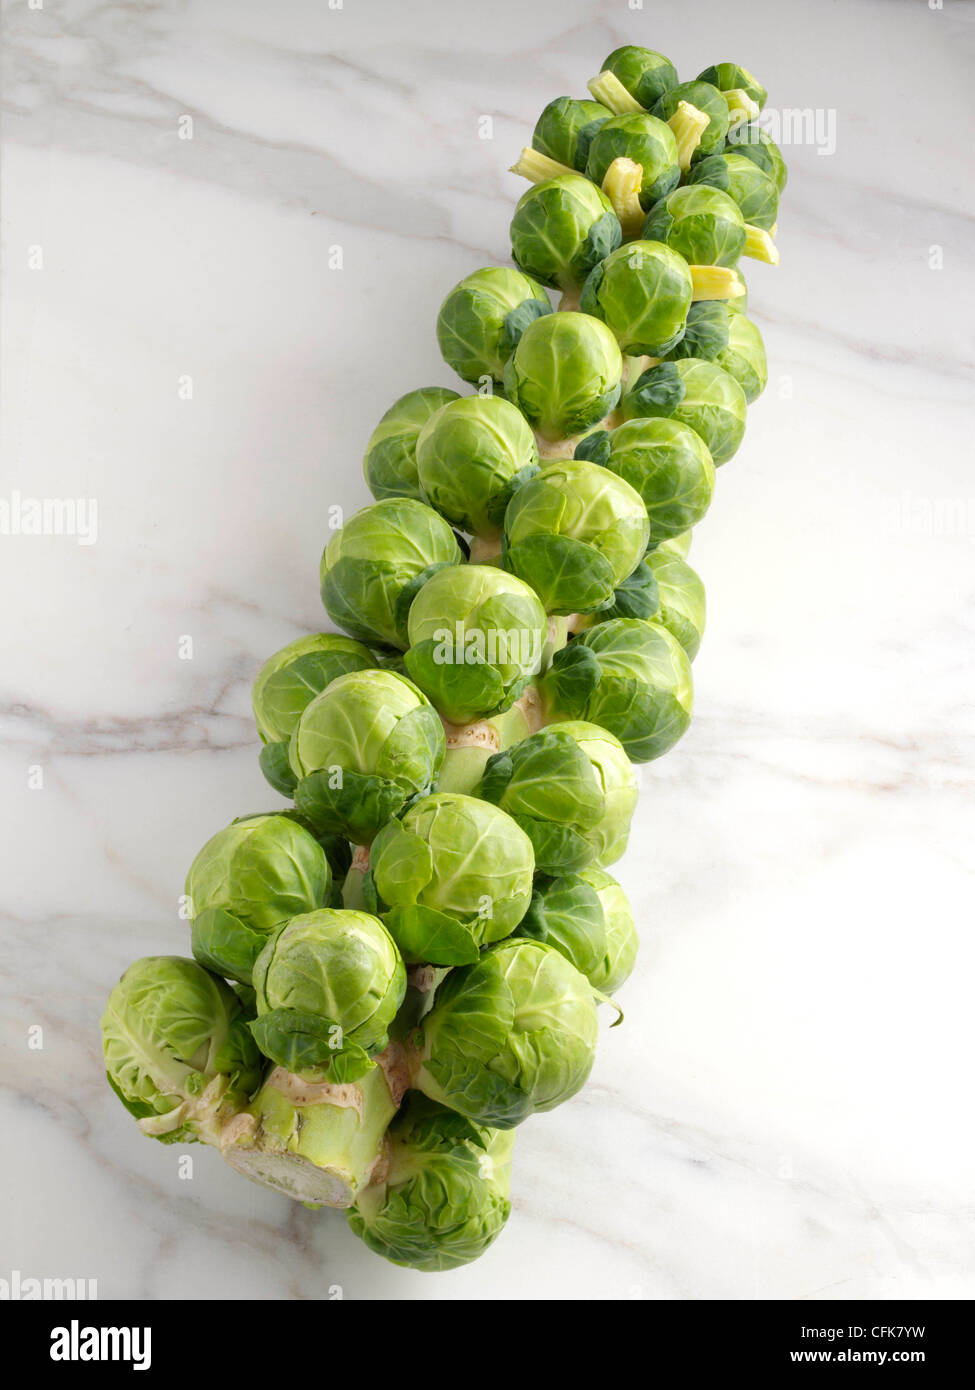 Brussels sprouts tree Stock Photo